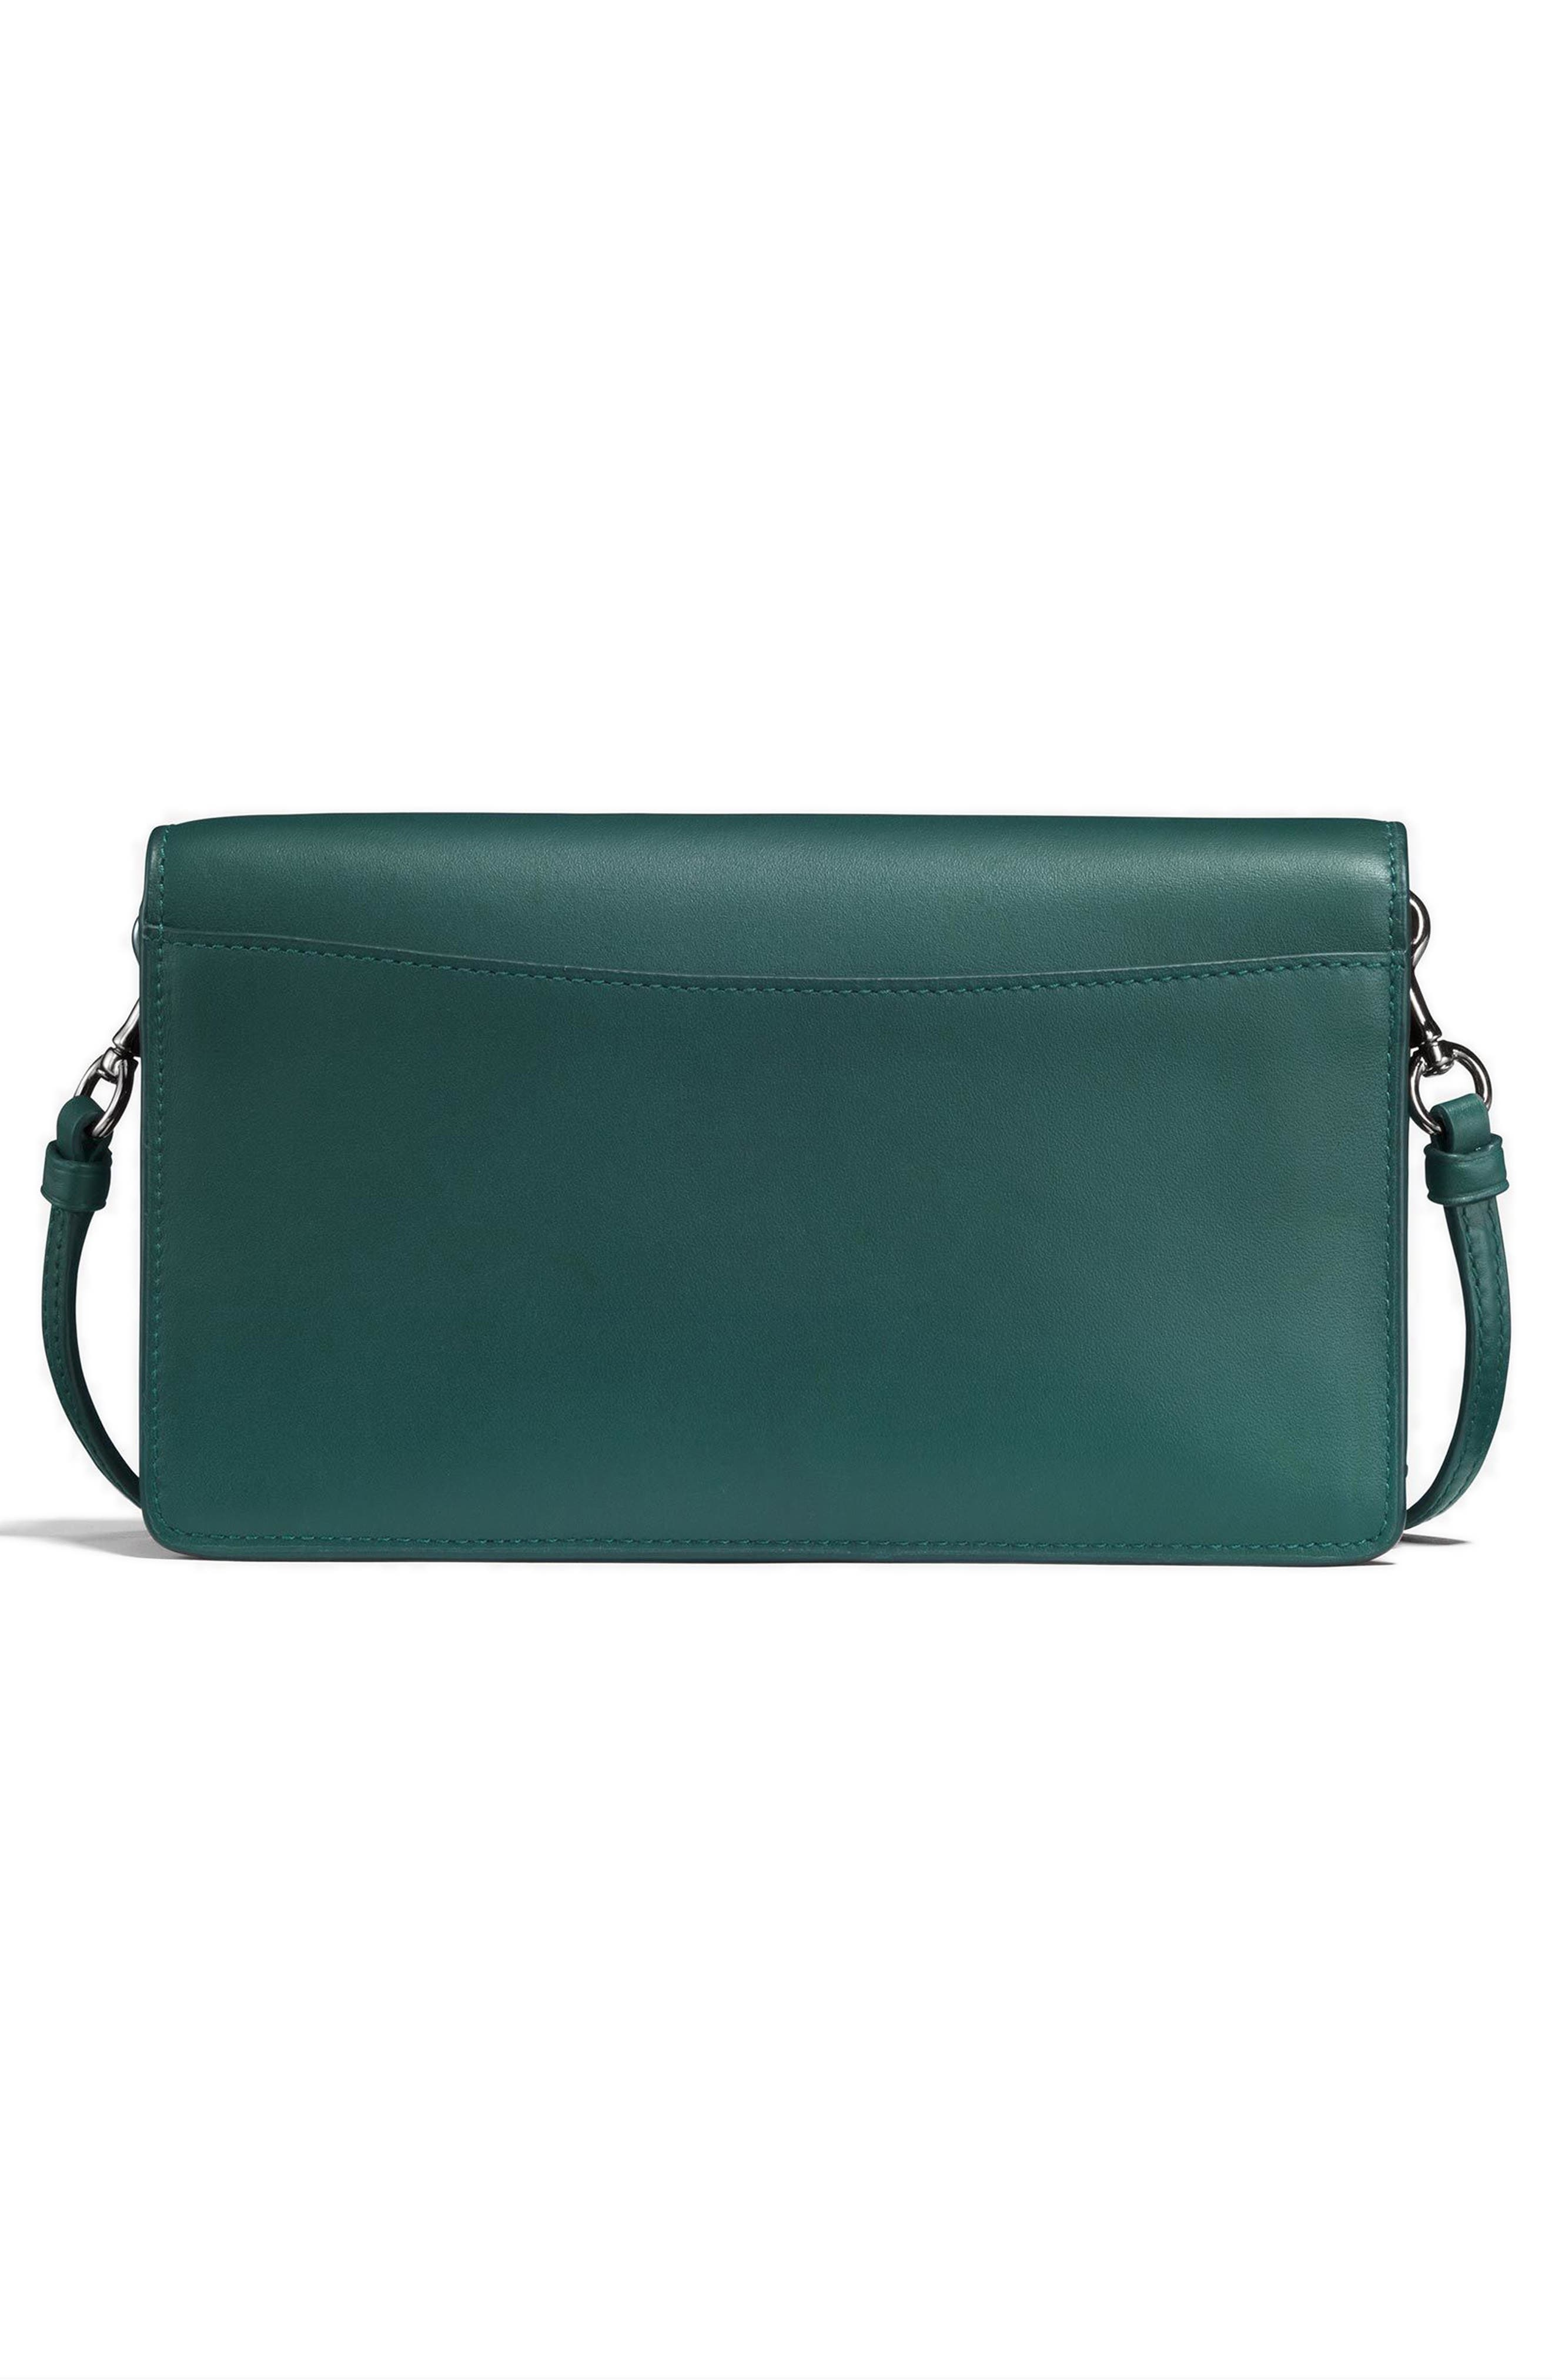 Calfskin Leather Foldover Convertible Clutch,                             Alternate thumbnail 2, color,                             Dark Turquoise